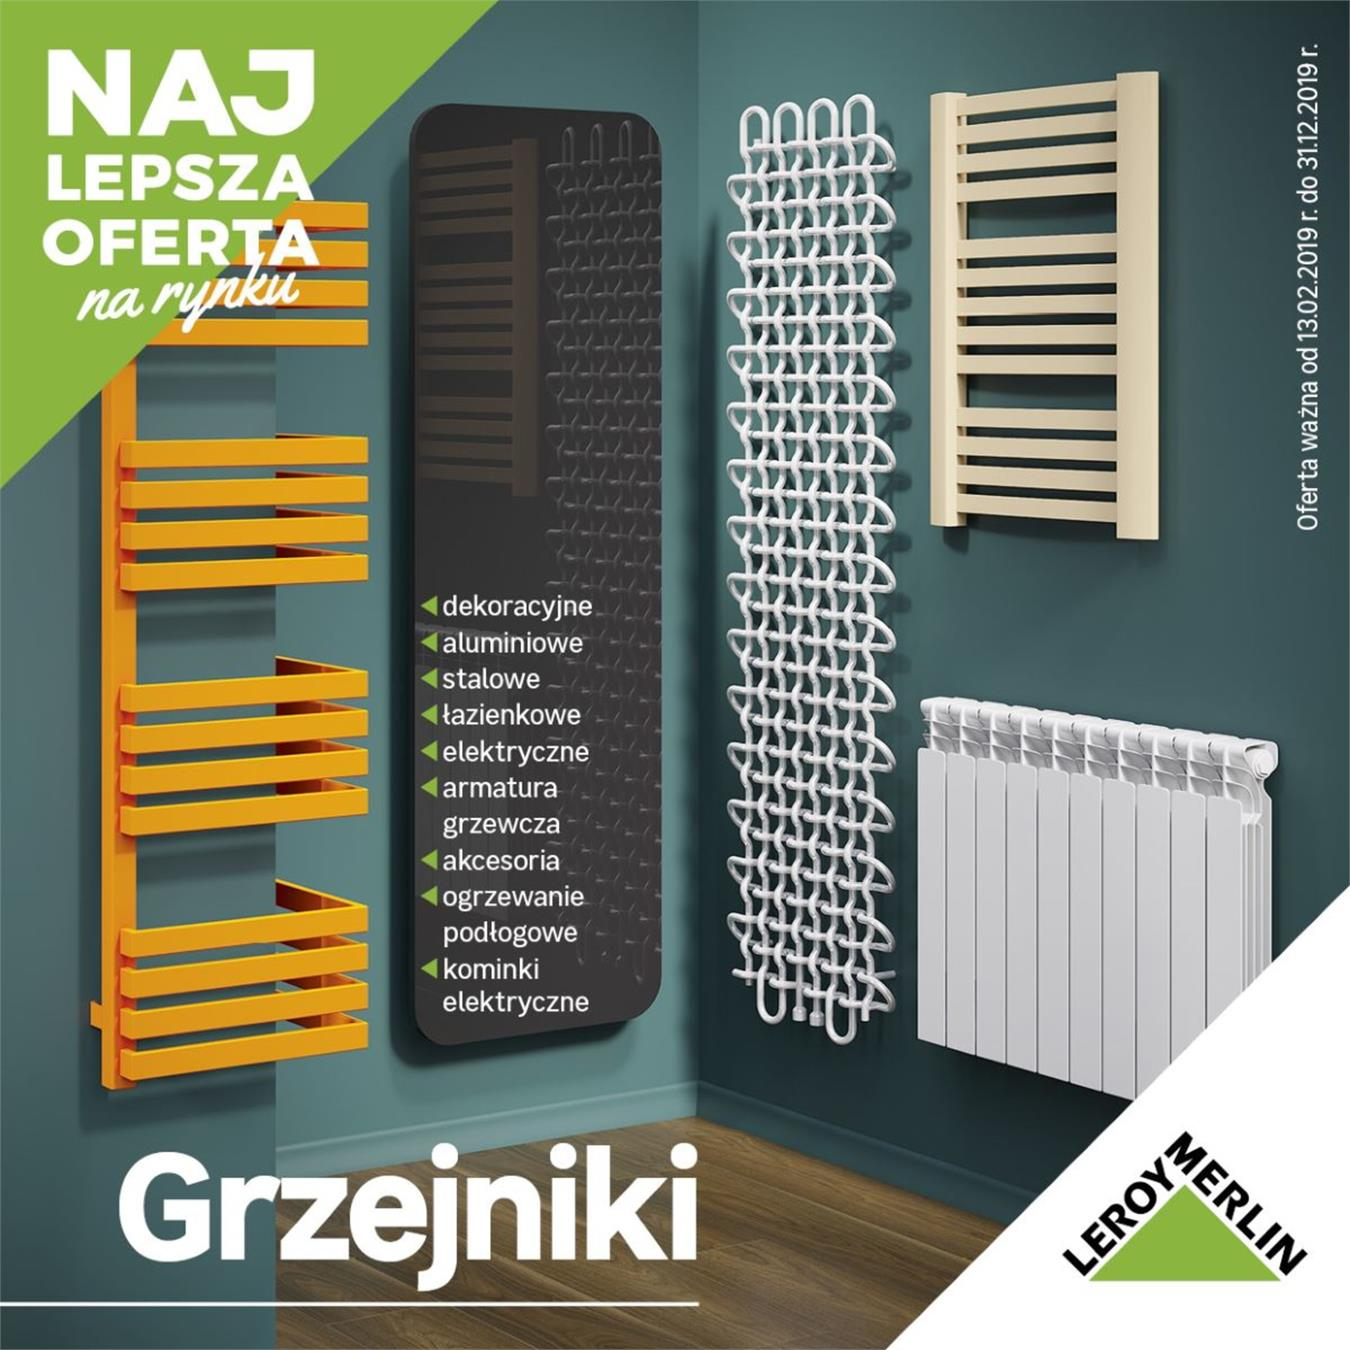 Gazetka Leroy Merlin Polska Sp. z o.o. nr 1 od 2019-02-15 do 2019-12-31